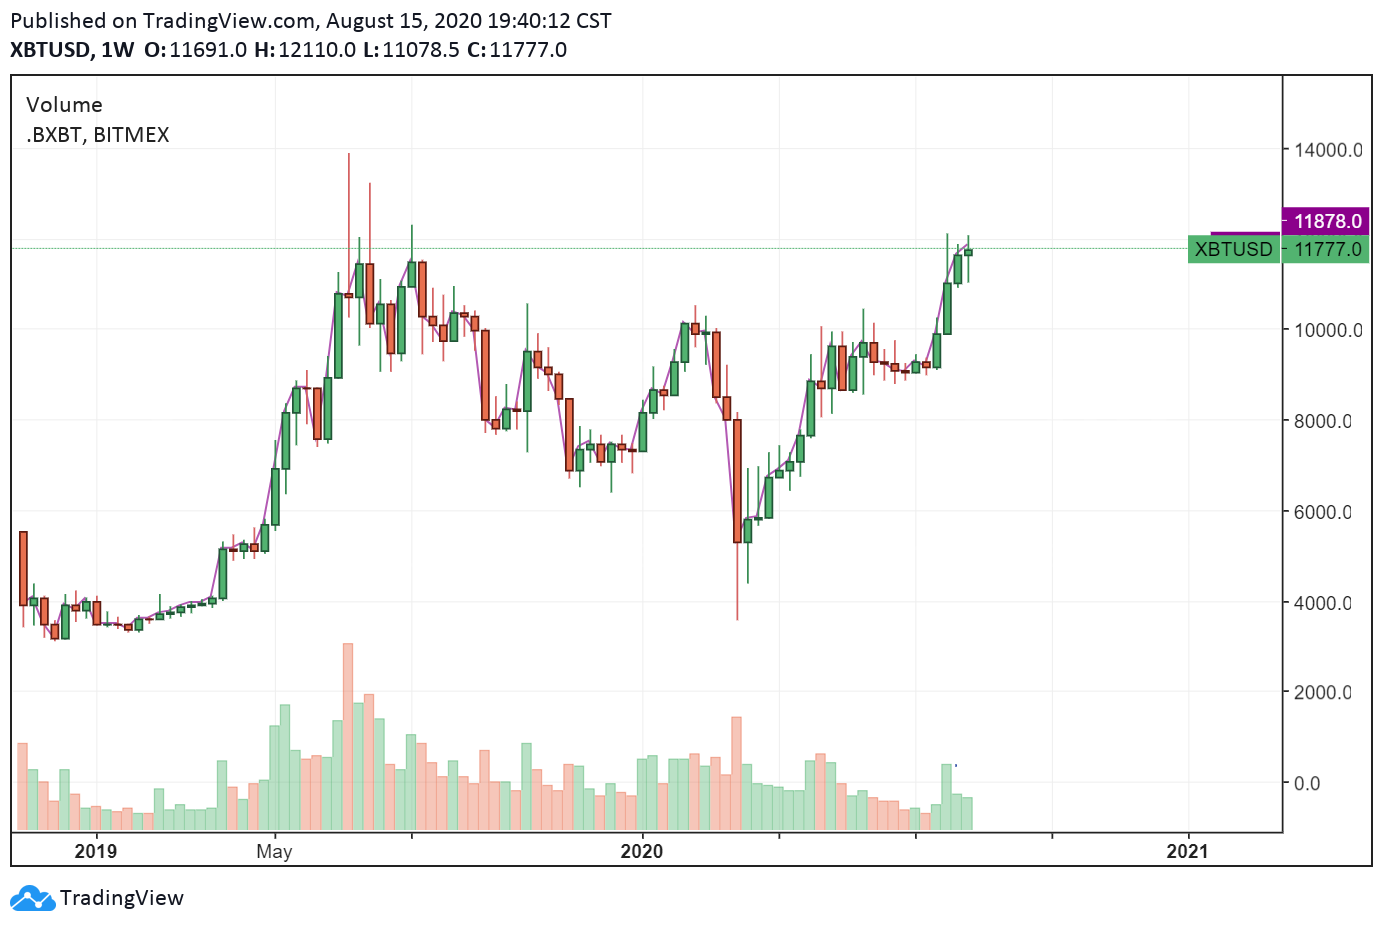 The weekly price chart of Bitcoin